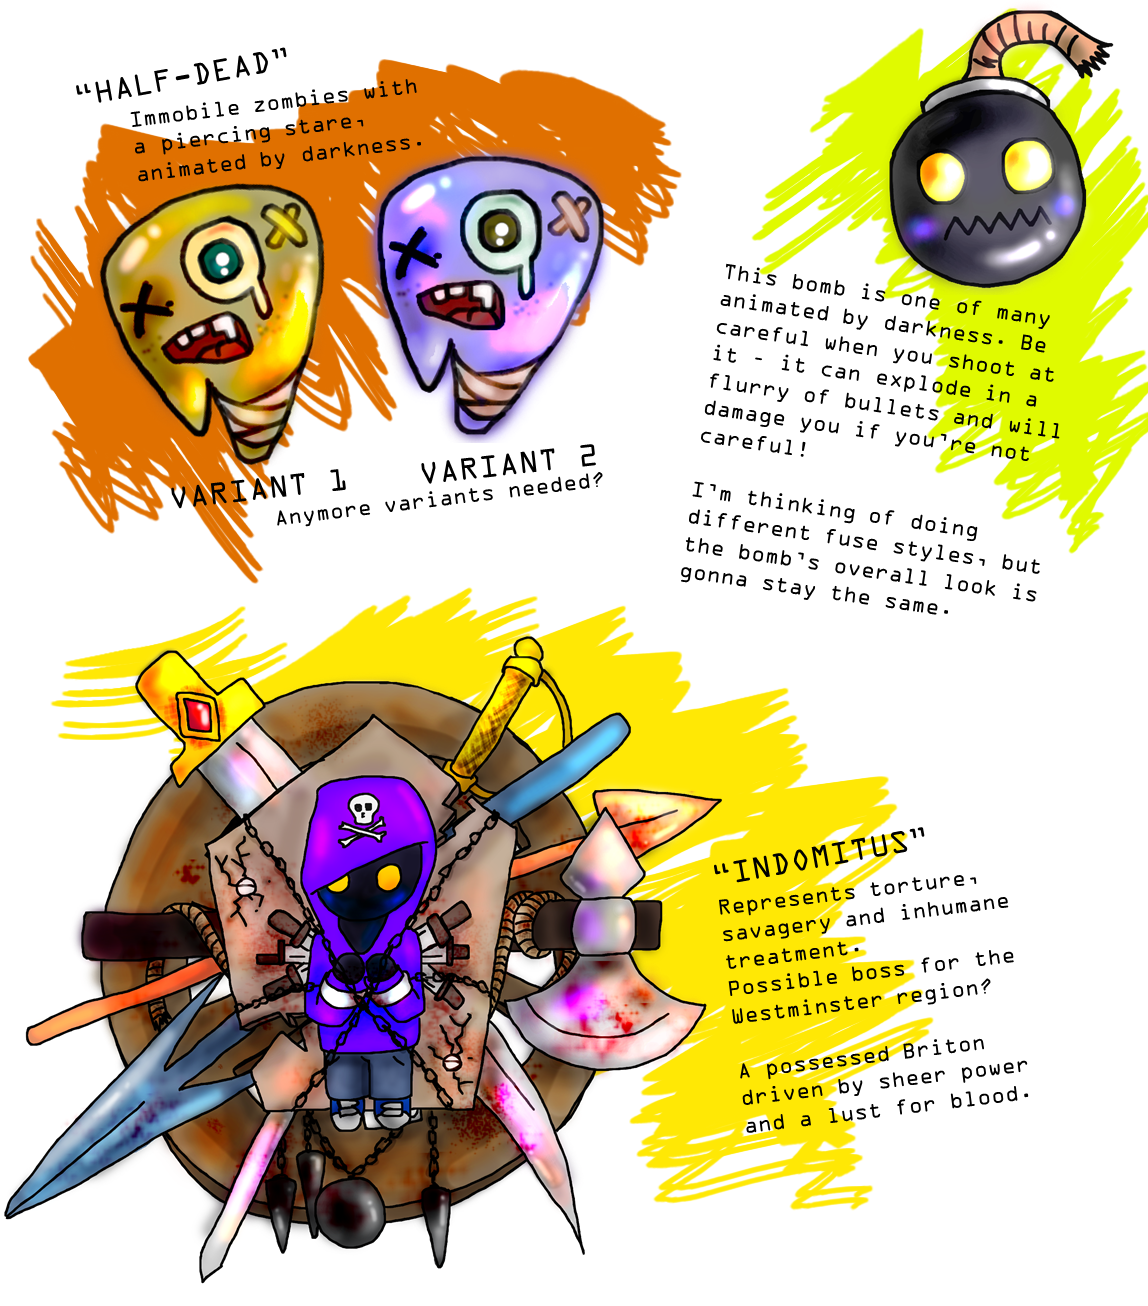 P. Chaplaincy Enemy Concepts